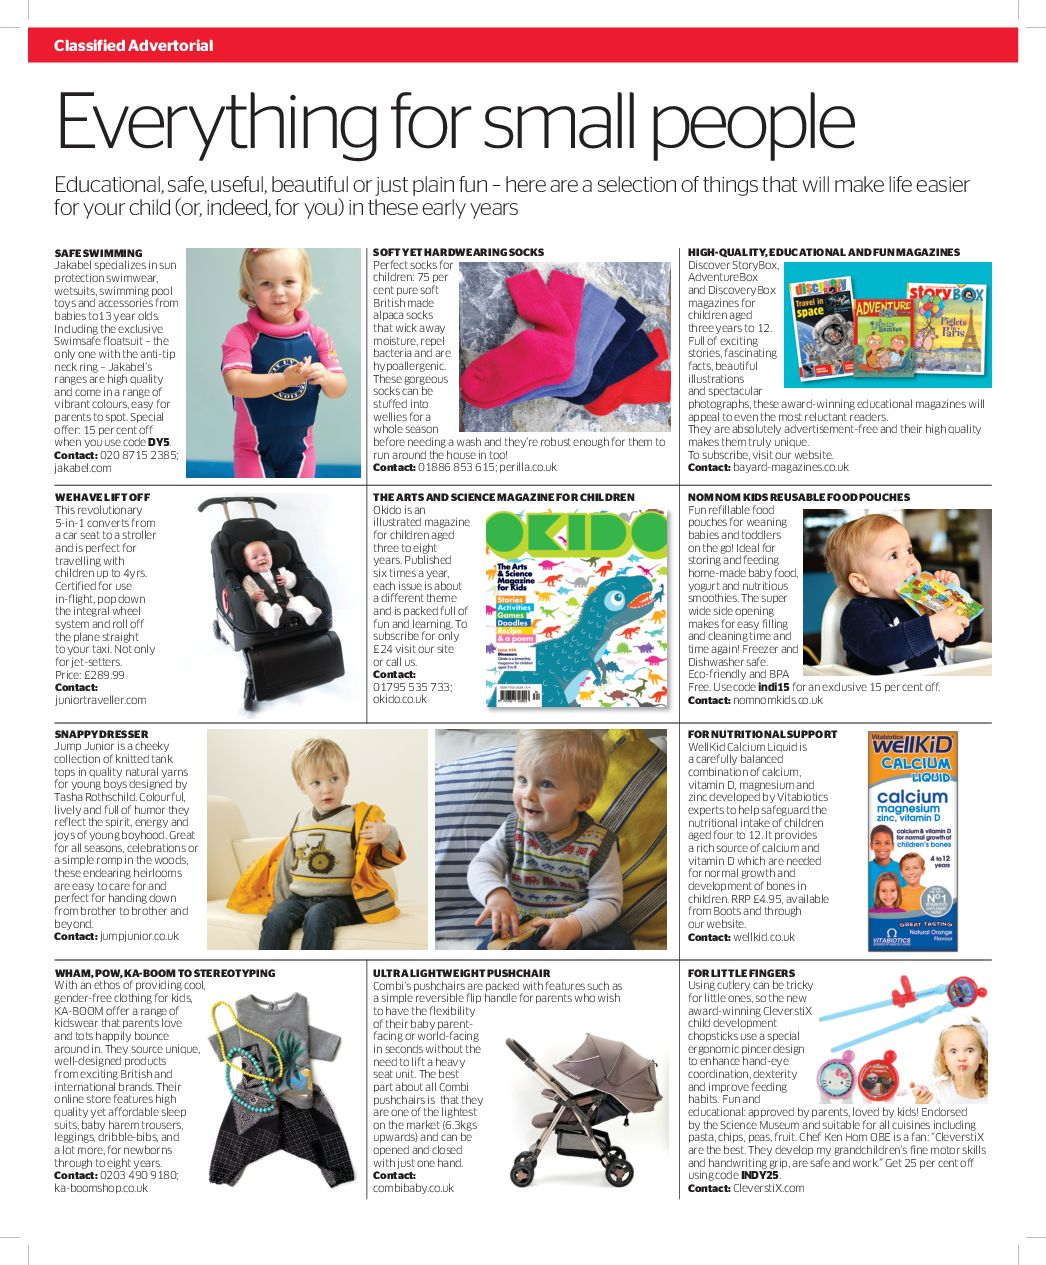 Independent Newspaper Parent section with CleverstiX